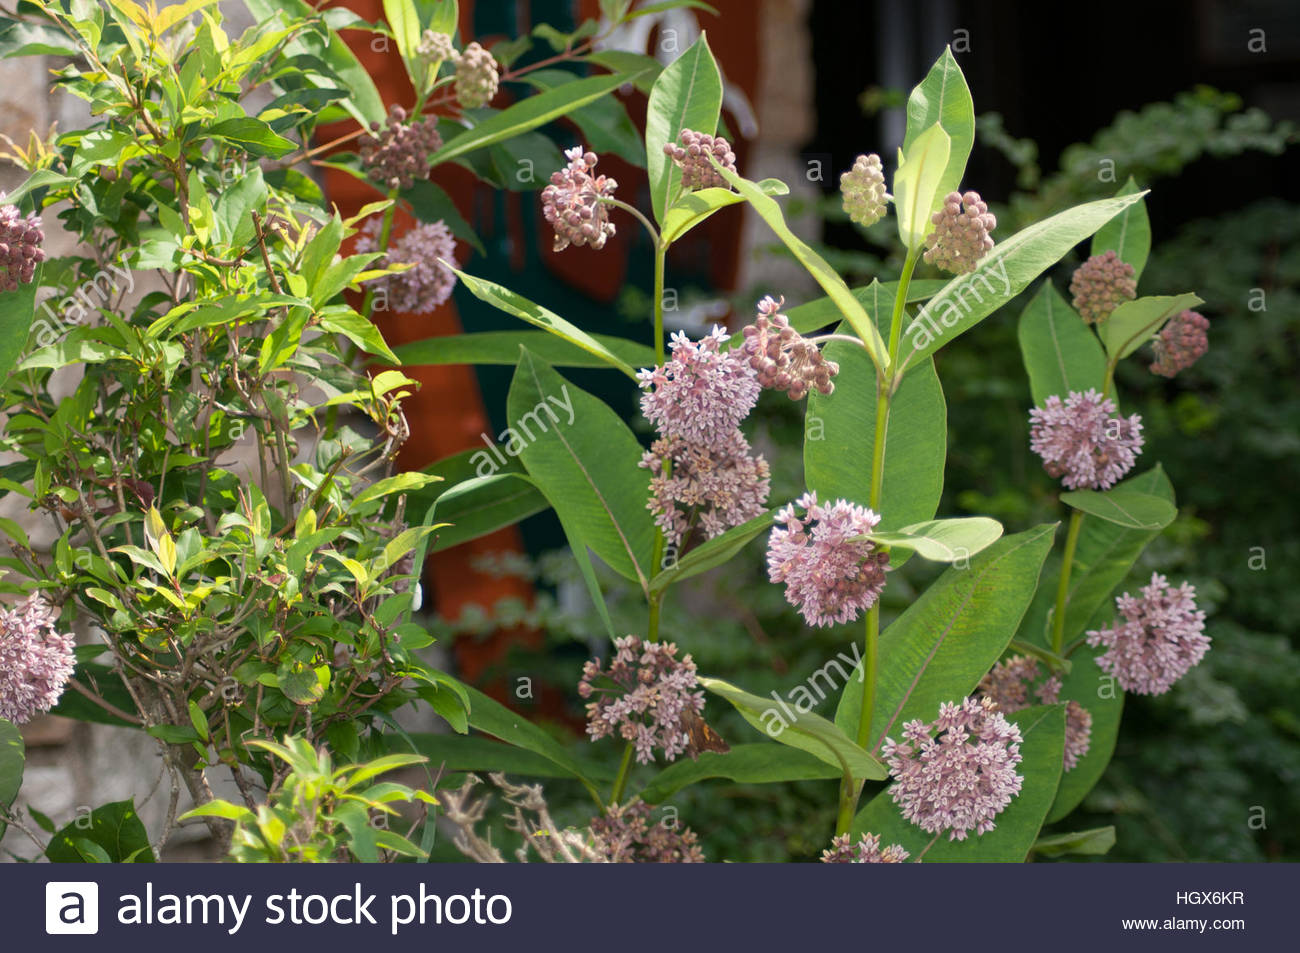 milkweed-in-flower-the-species-that-mona